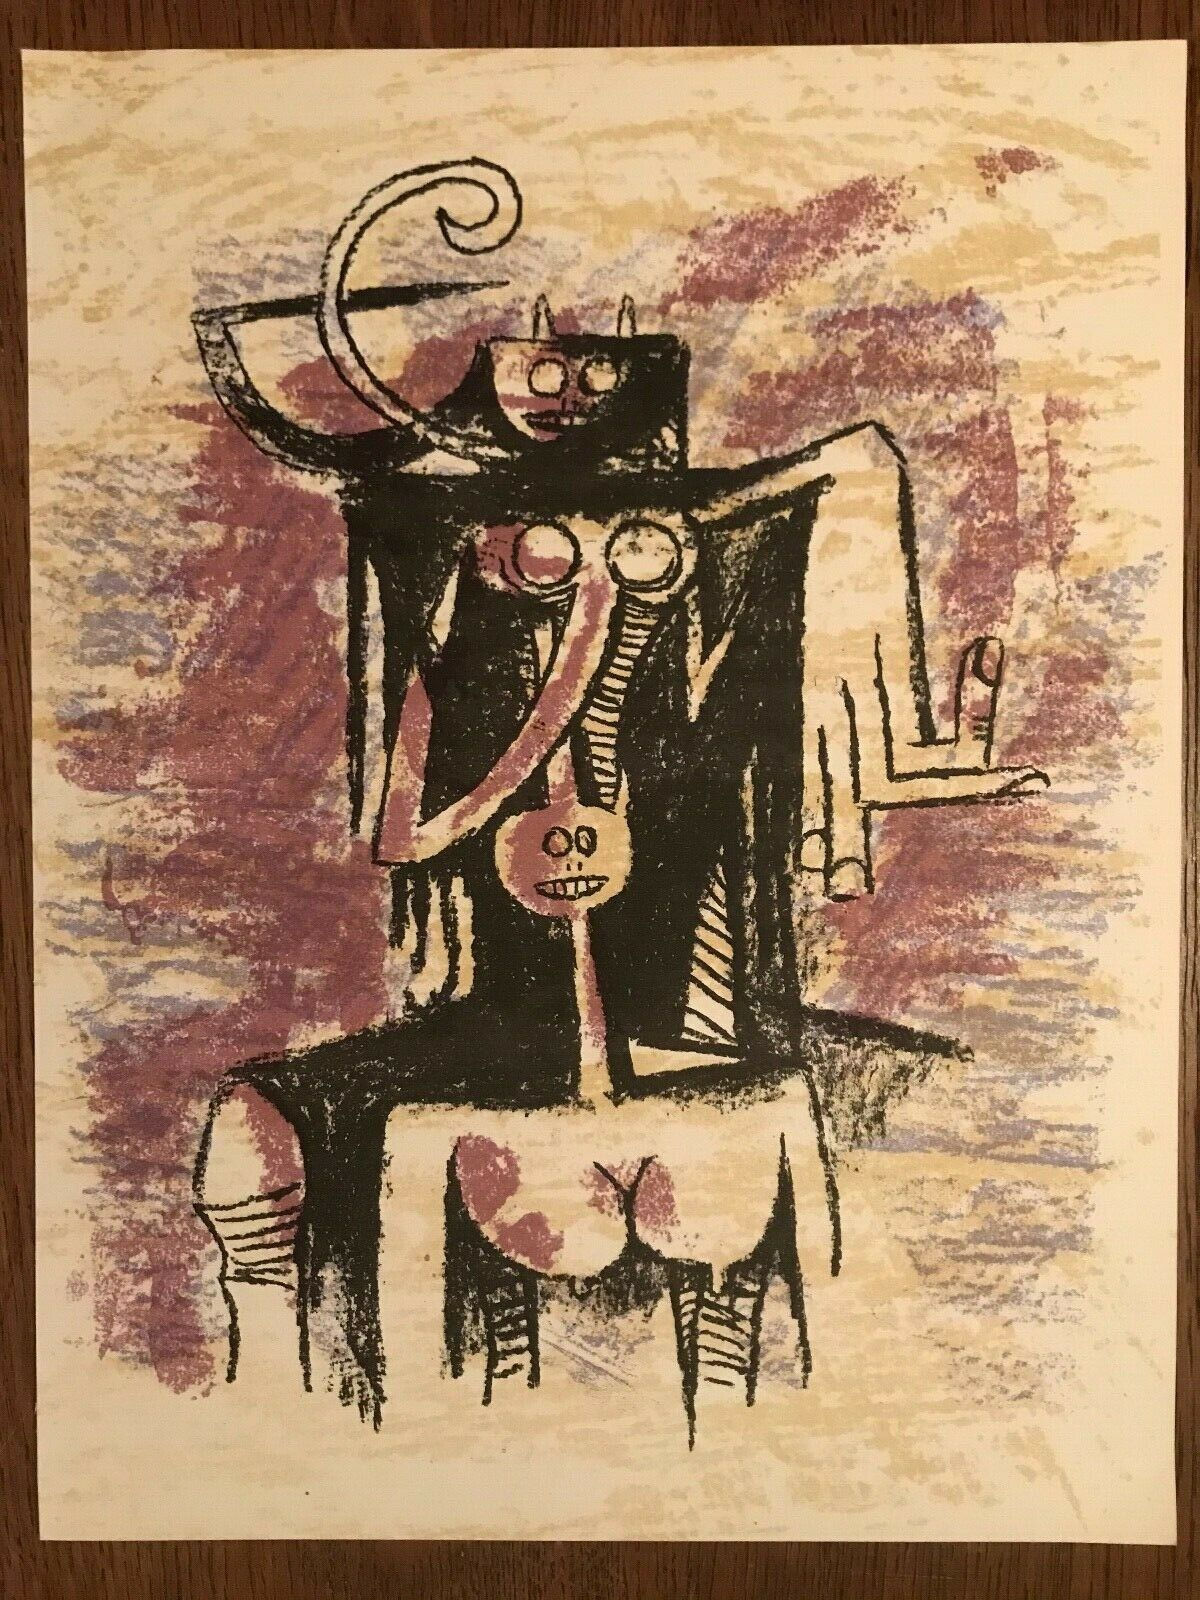 Wifredo LAM - Lithograph pour XXe Siecle - 1974